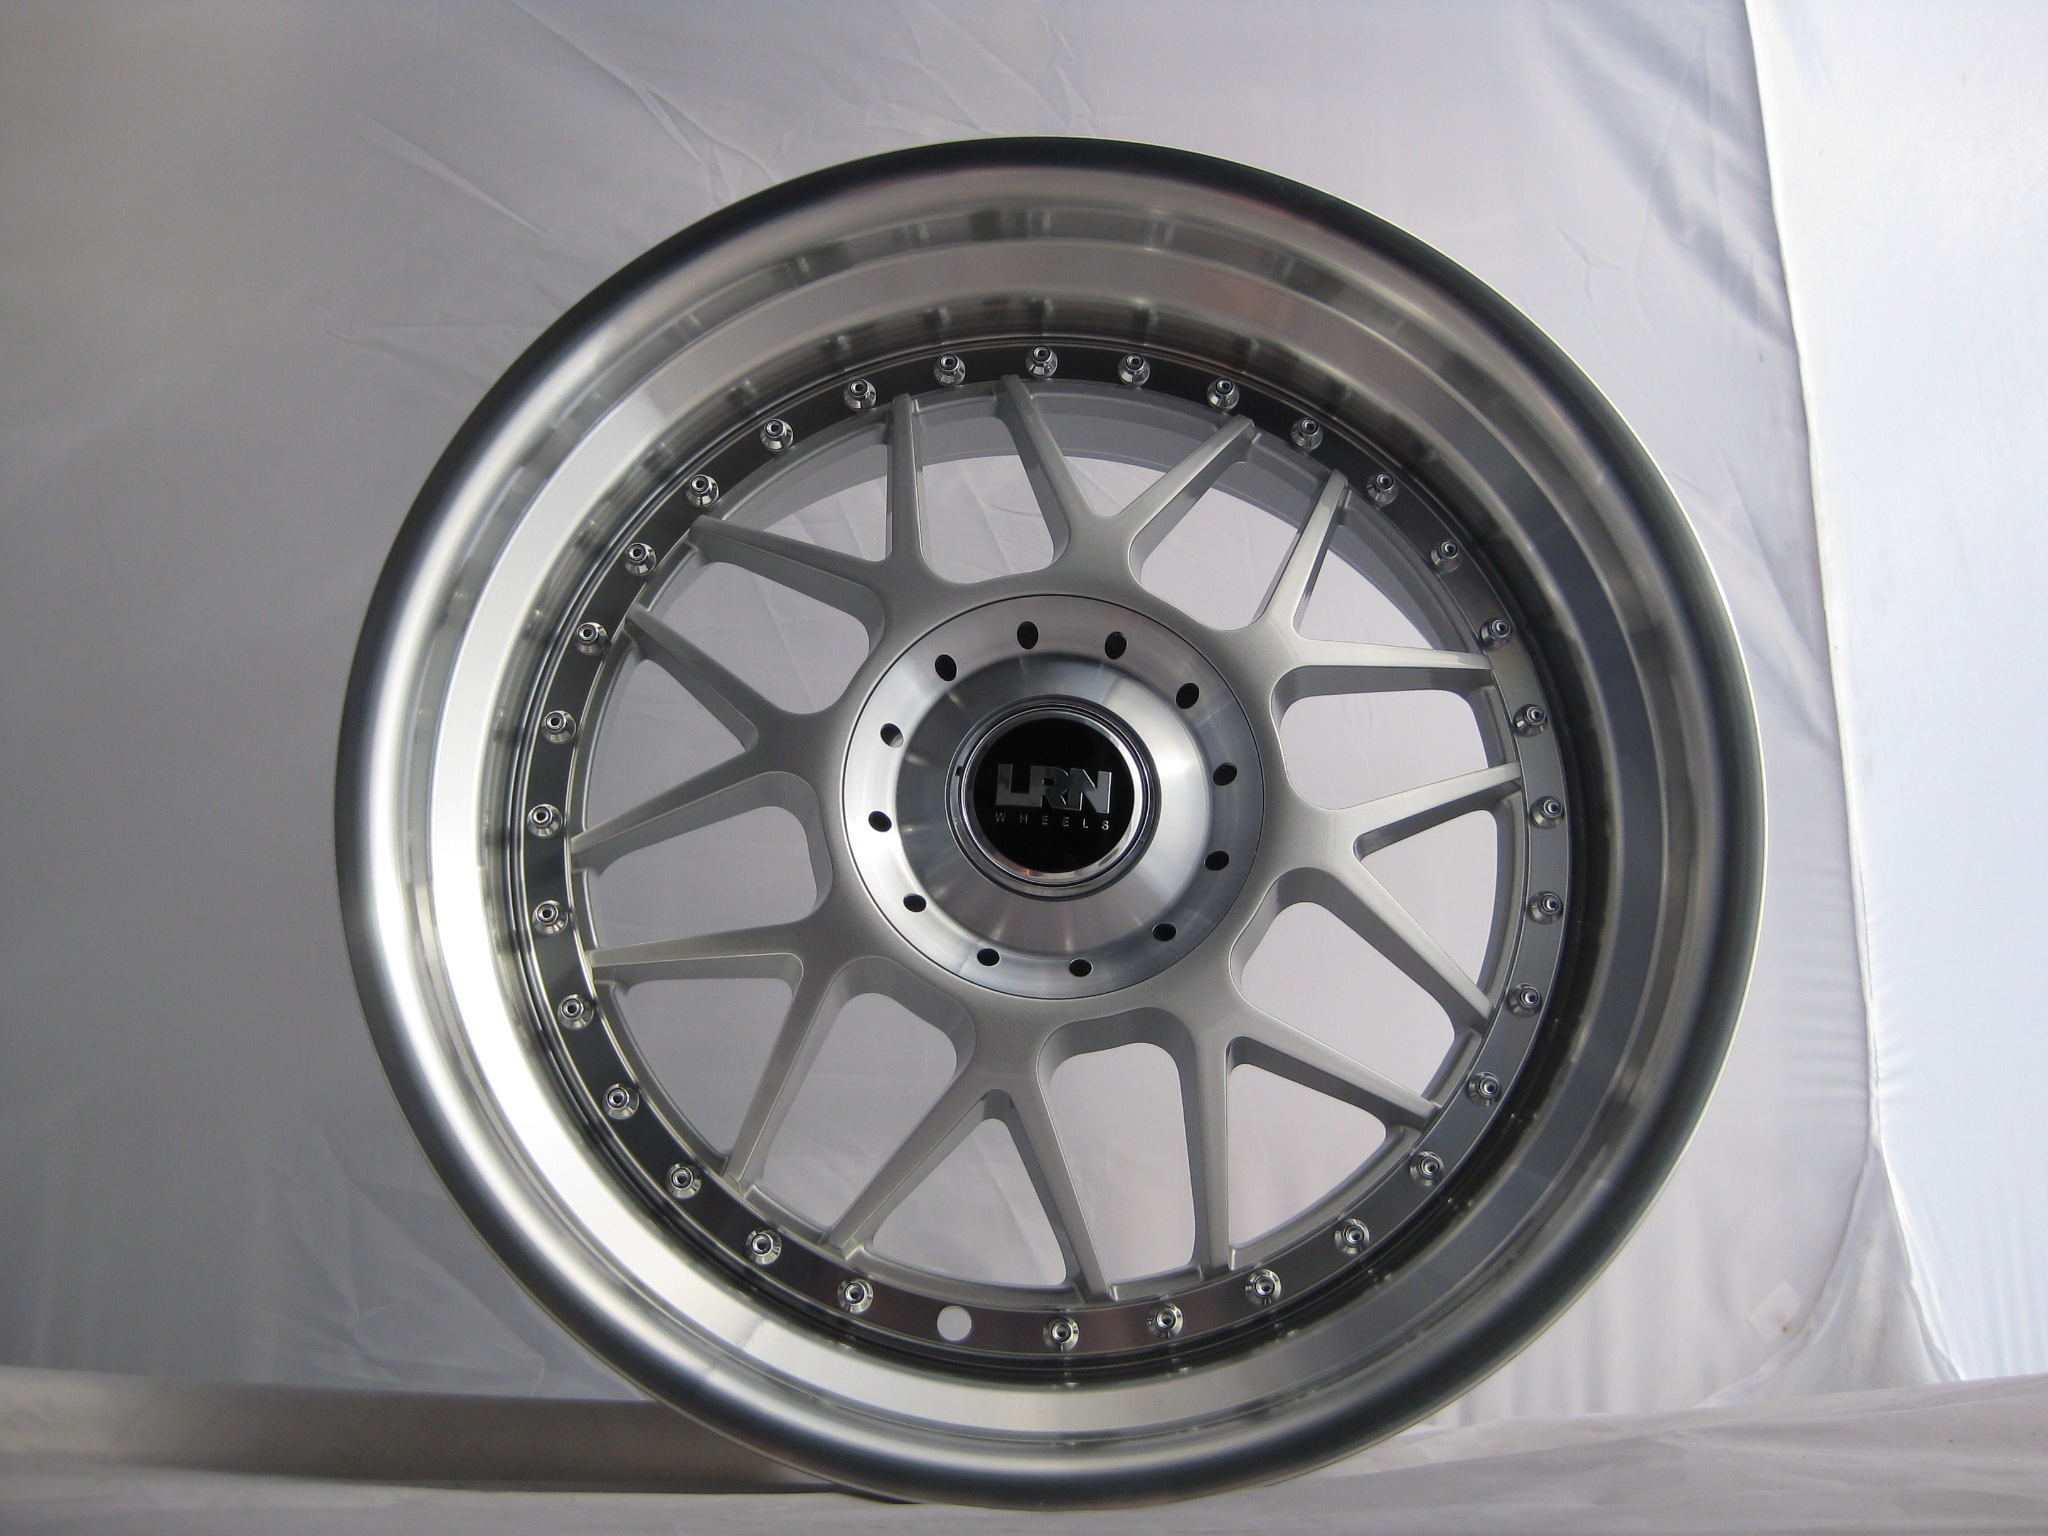 "NEW 18"" LRN BLITZ ALLOY WHEELS IN SILVER WITH POLISHED STEPPED DISH, DEEPER 9"" REAR"